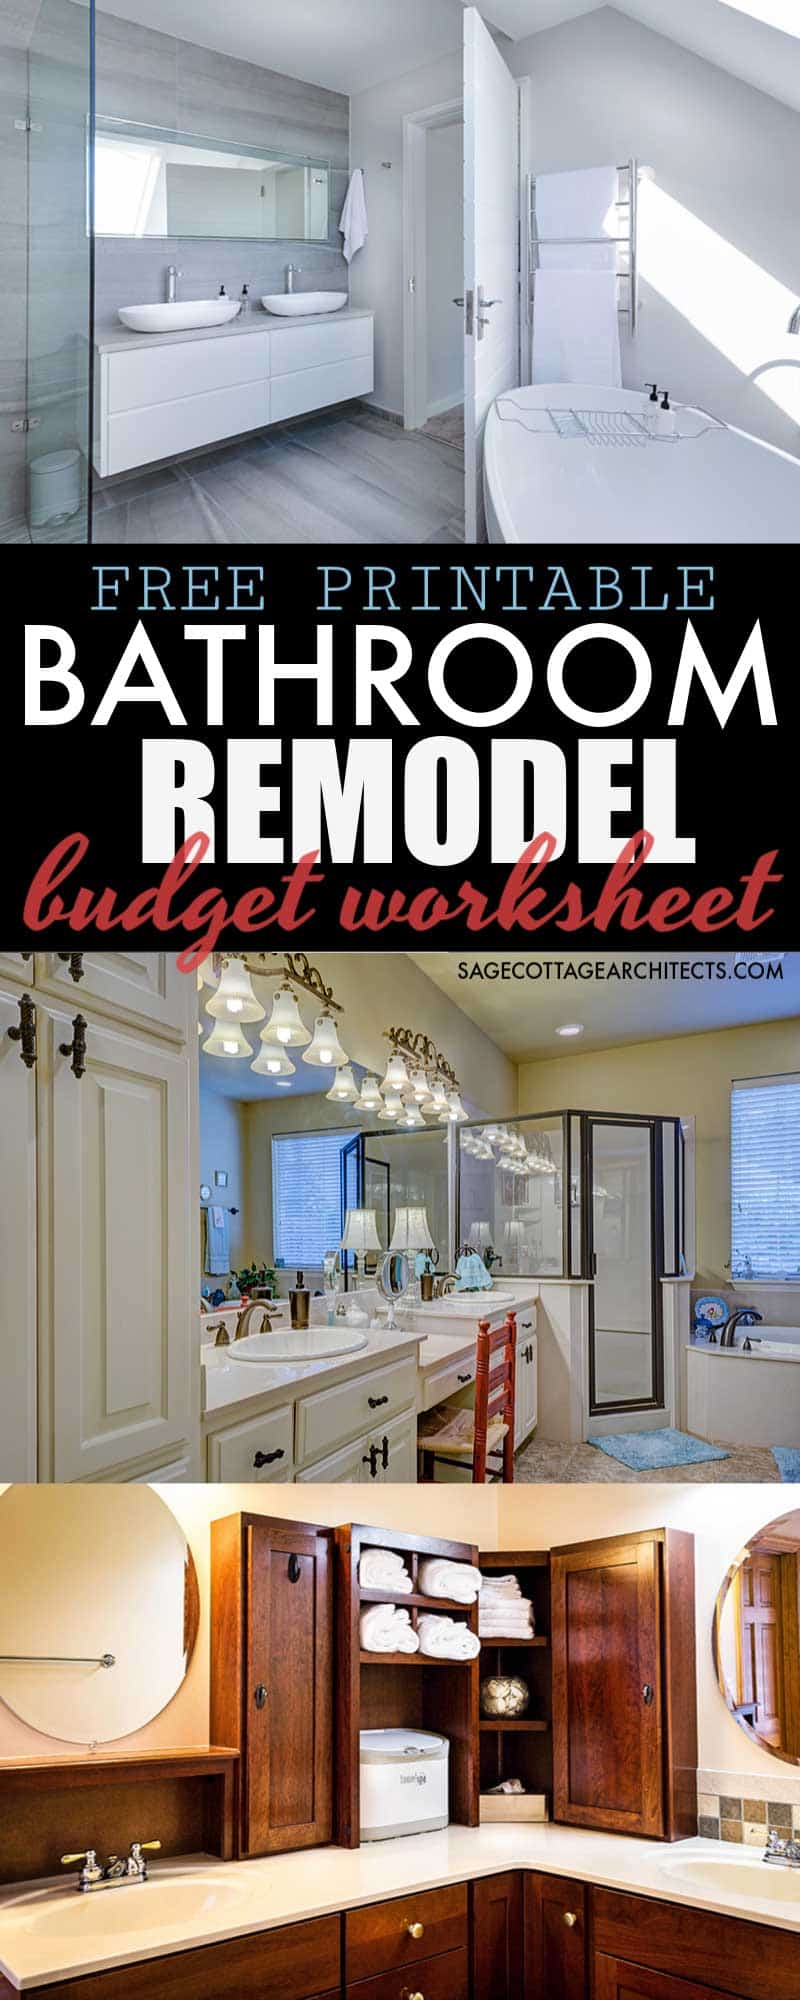 Average Cost of a Bathroom Remodel - Free Budgeting Printable 7